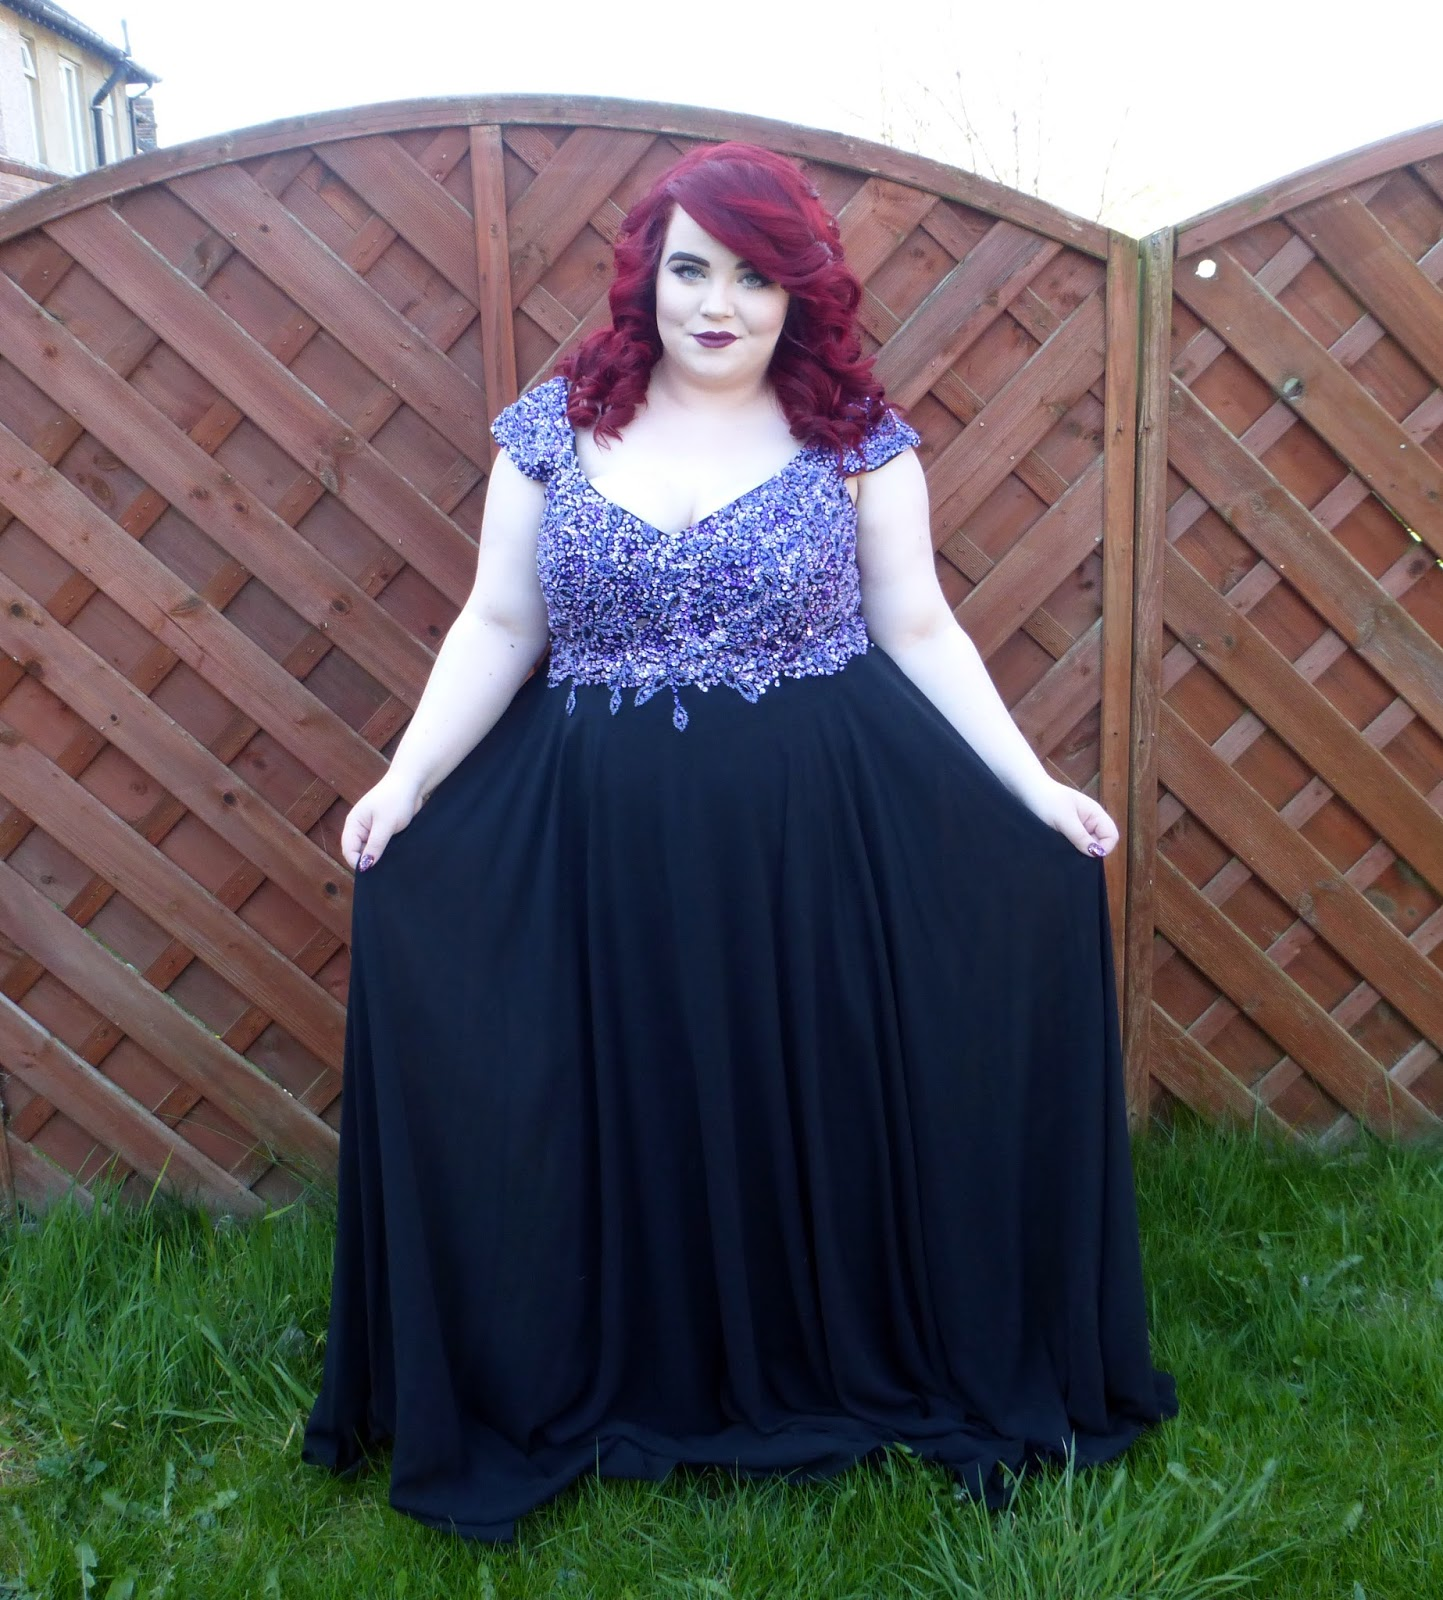 Dynasty London - Viviana Black & Purple Plus Size Evening Dress, georgina grogan, plus size blogger, shemightbeloved